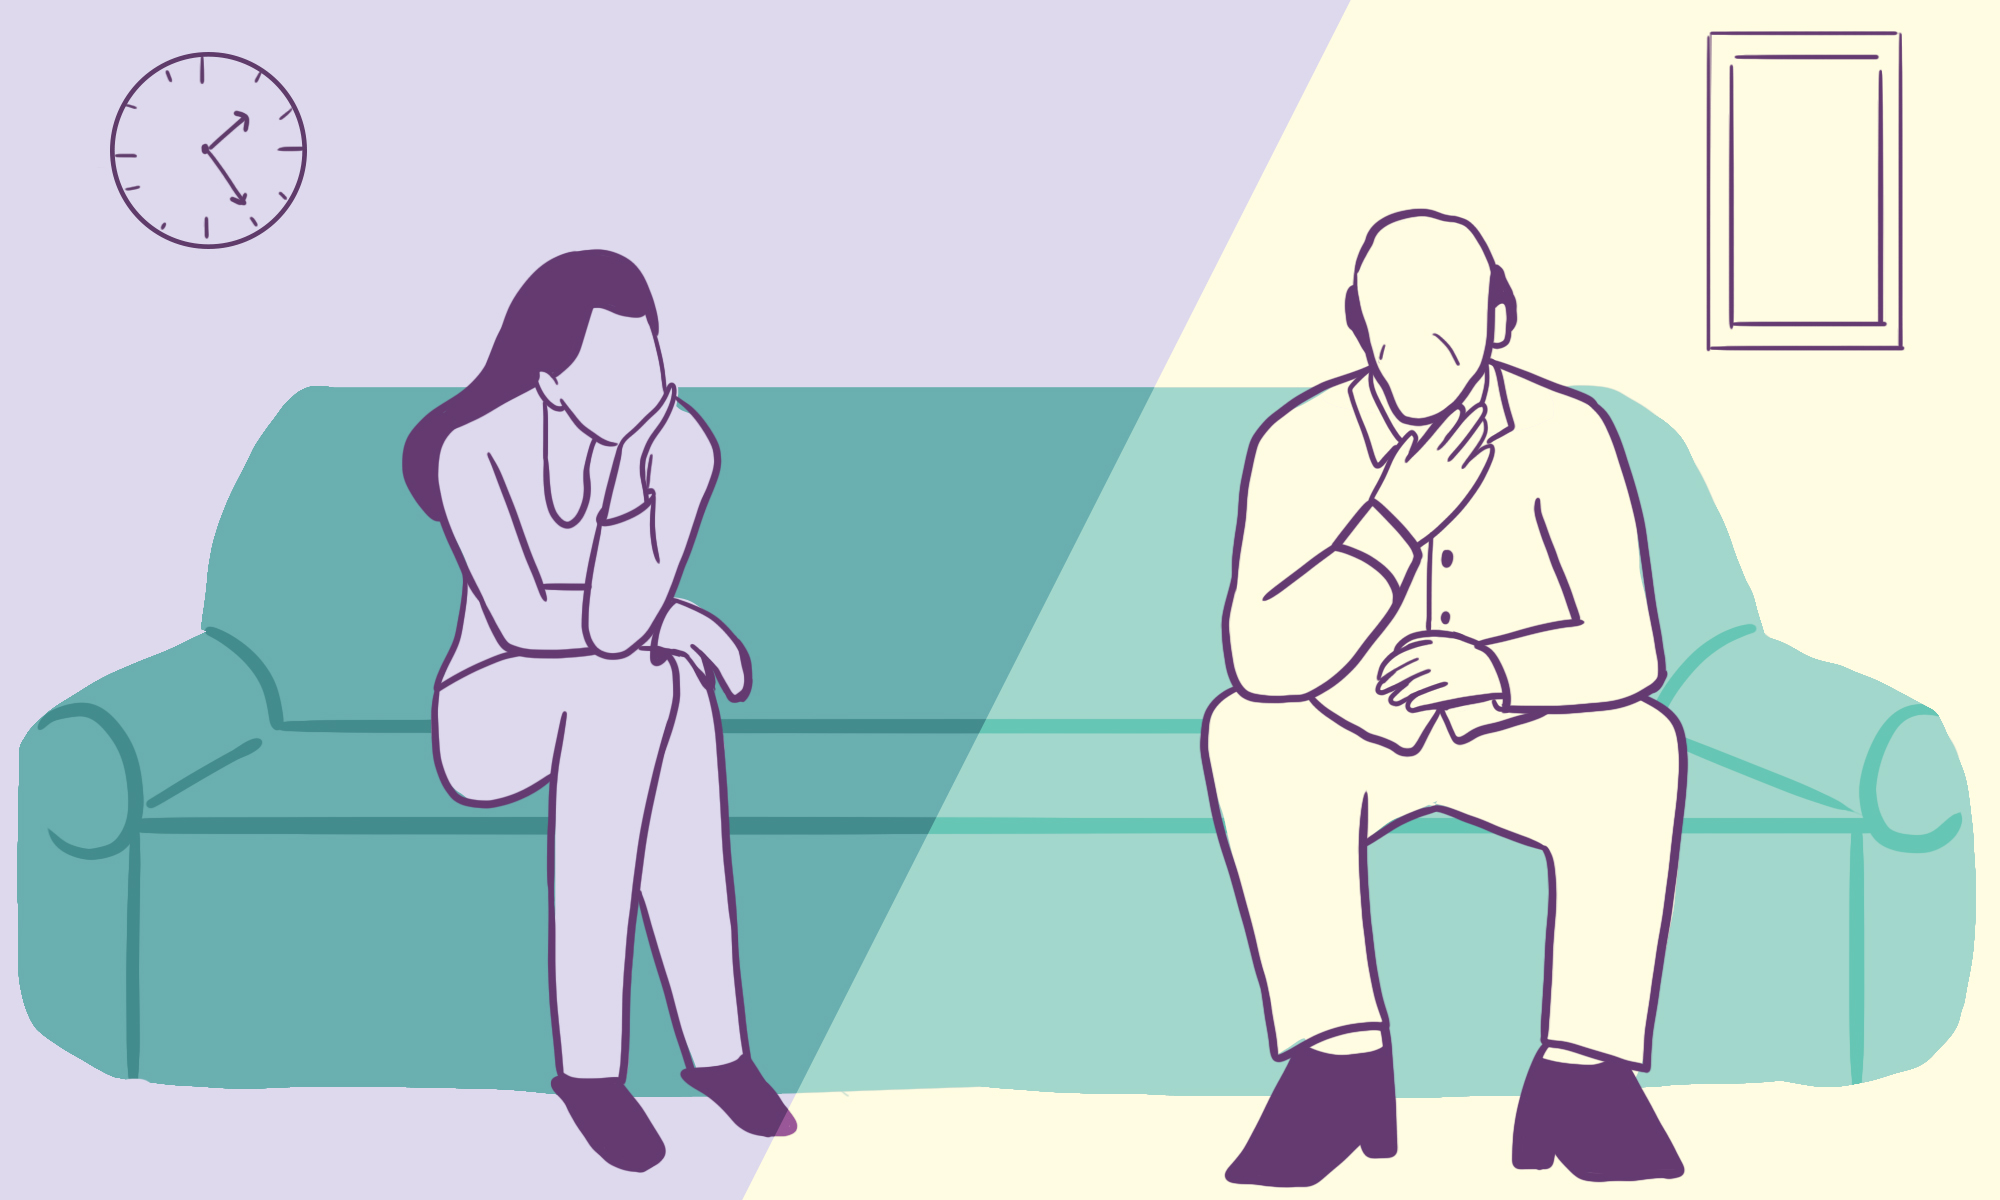 Illustration of a daughter and father on a therapist's couch